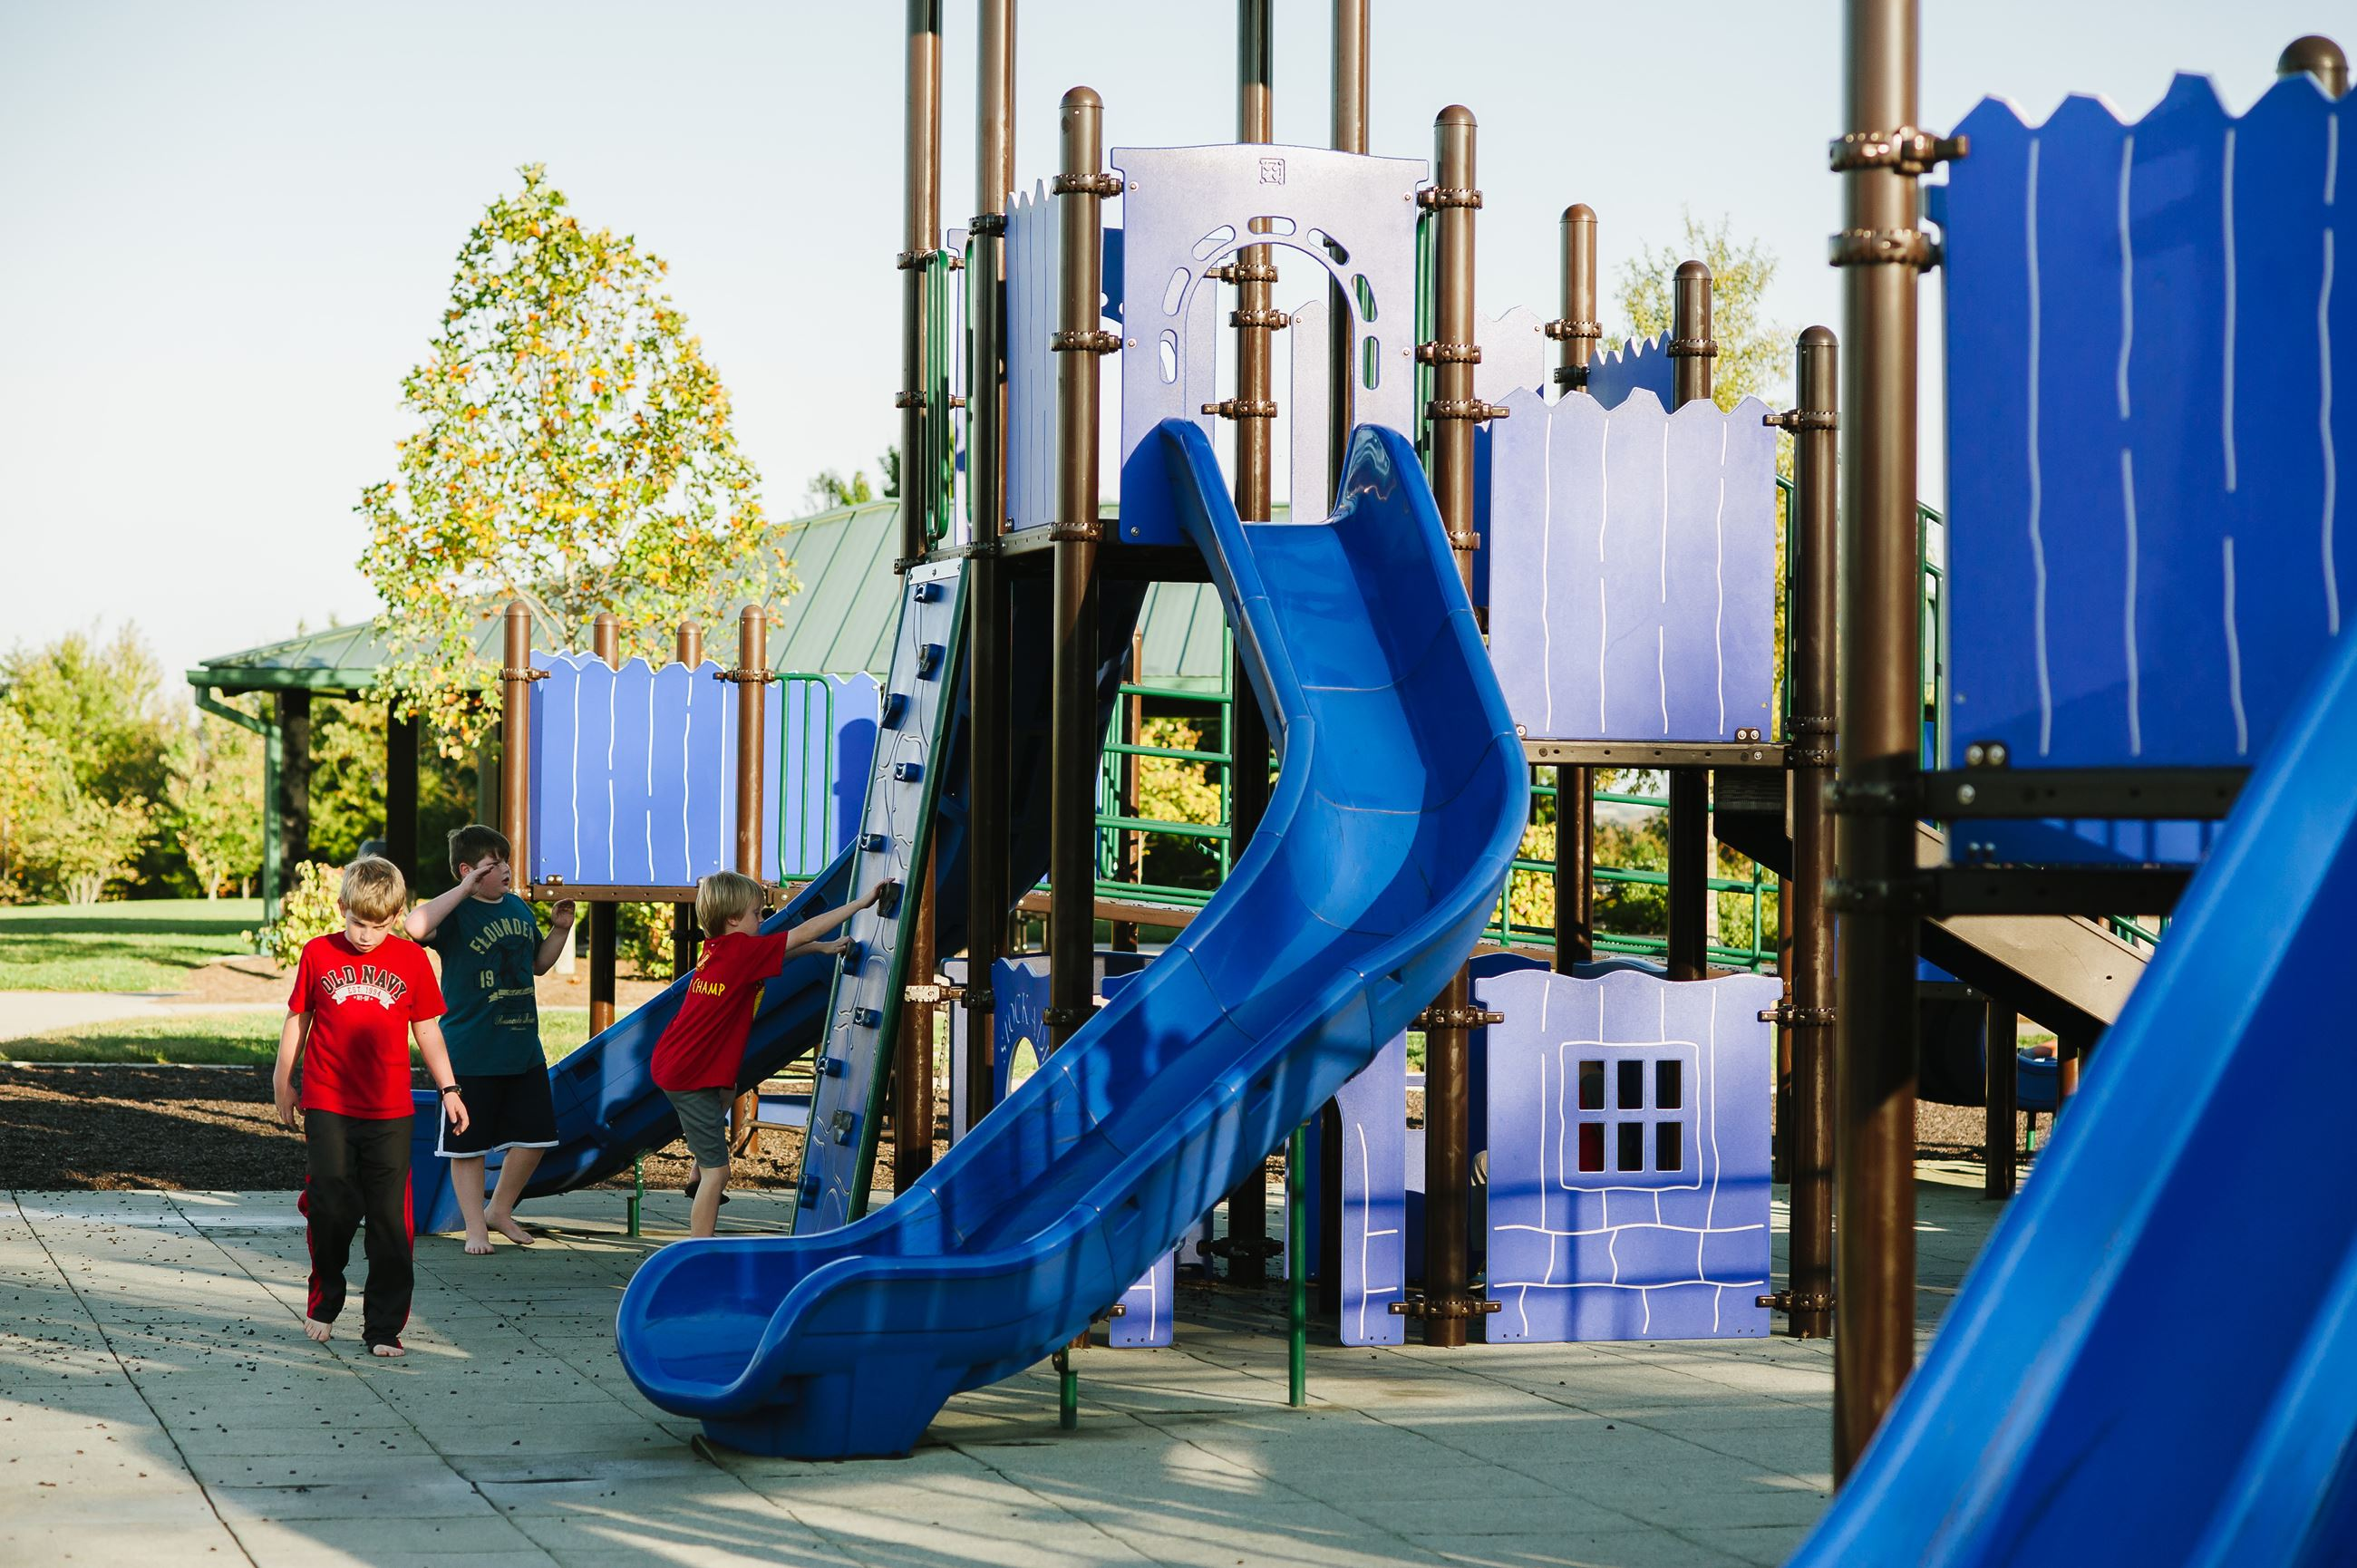 A photo of children playing on the McFee Park playground.